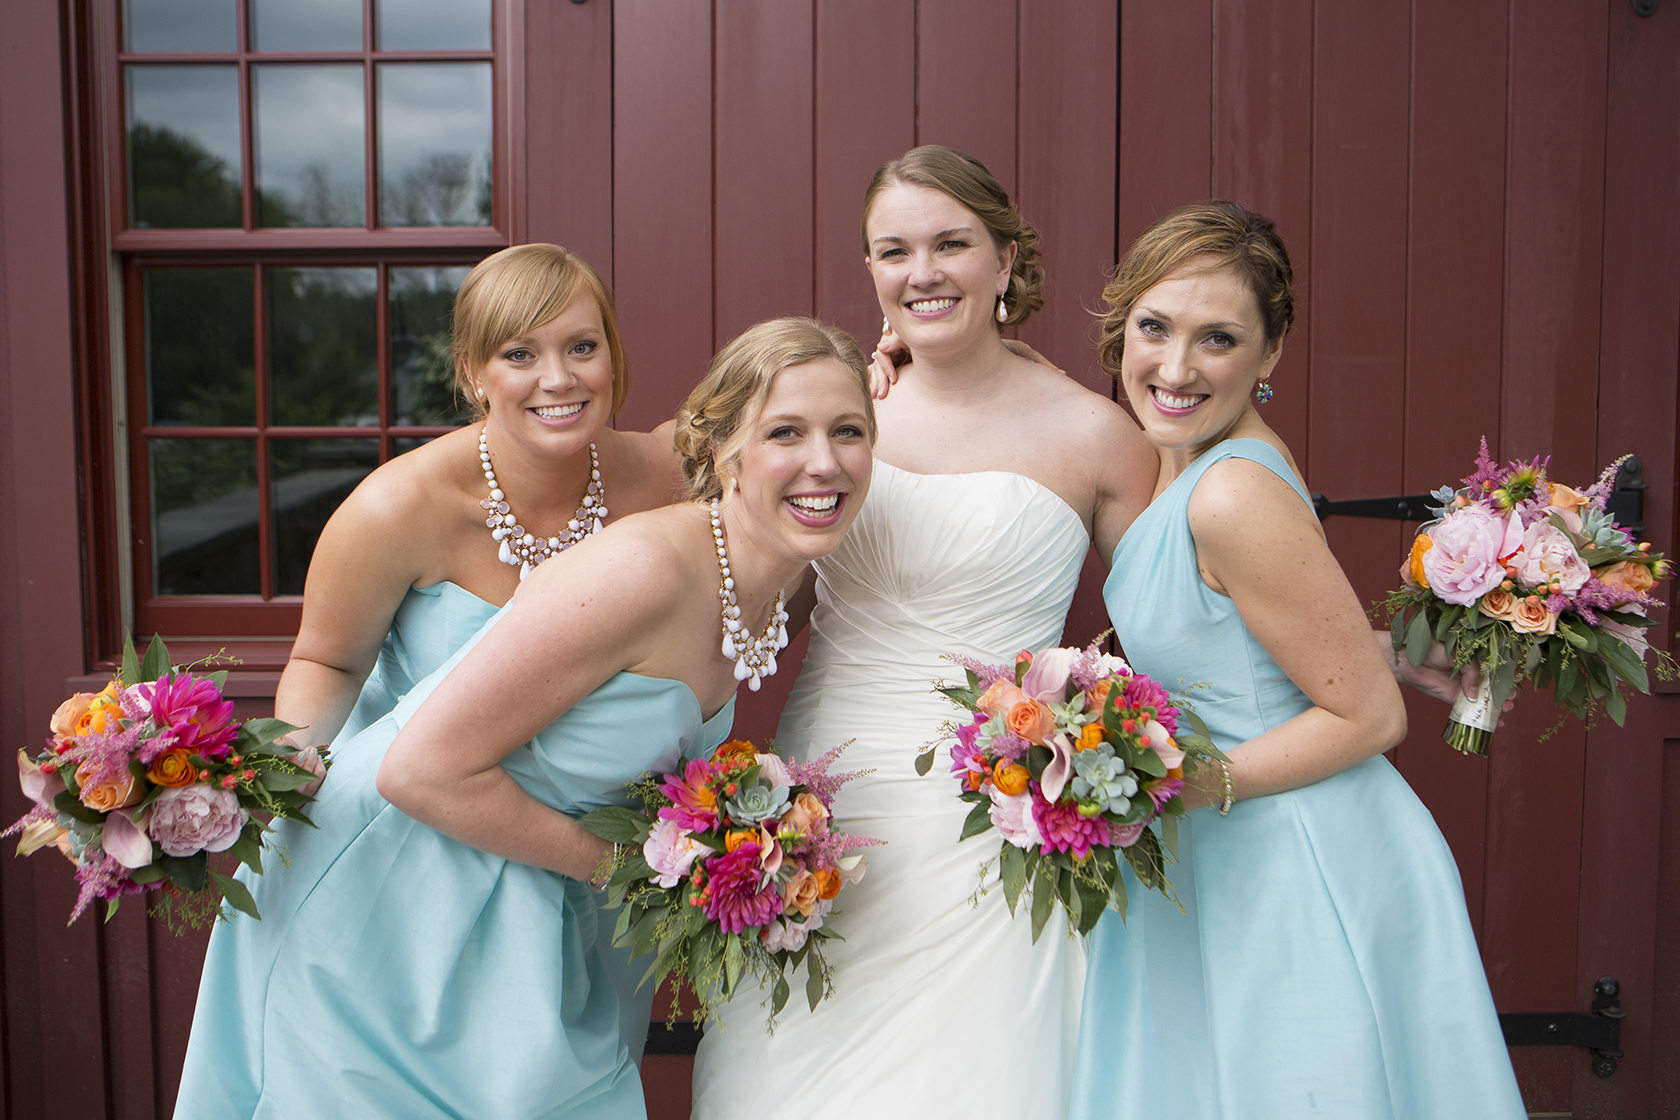 Wedding flowers the little gsp wedding bouquets pinks peaches succulents with aqua dresses izmirmasajfo